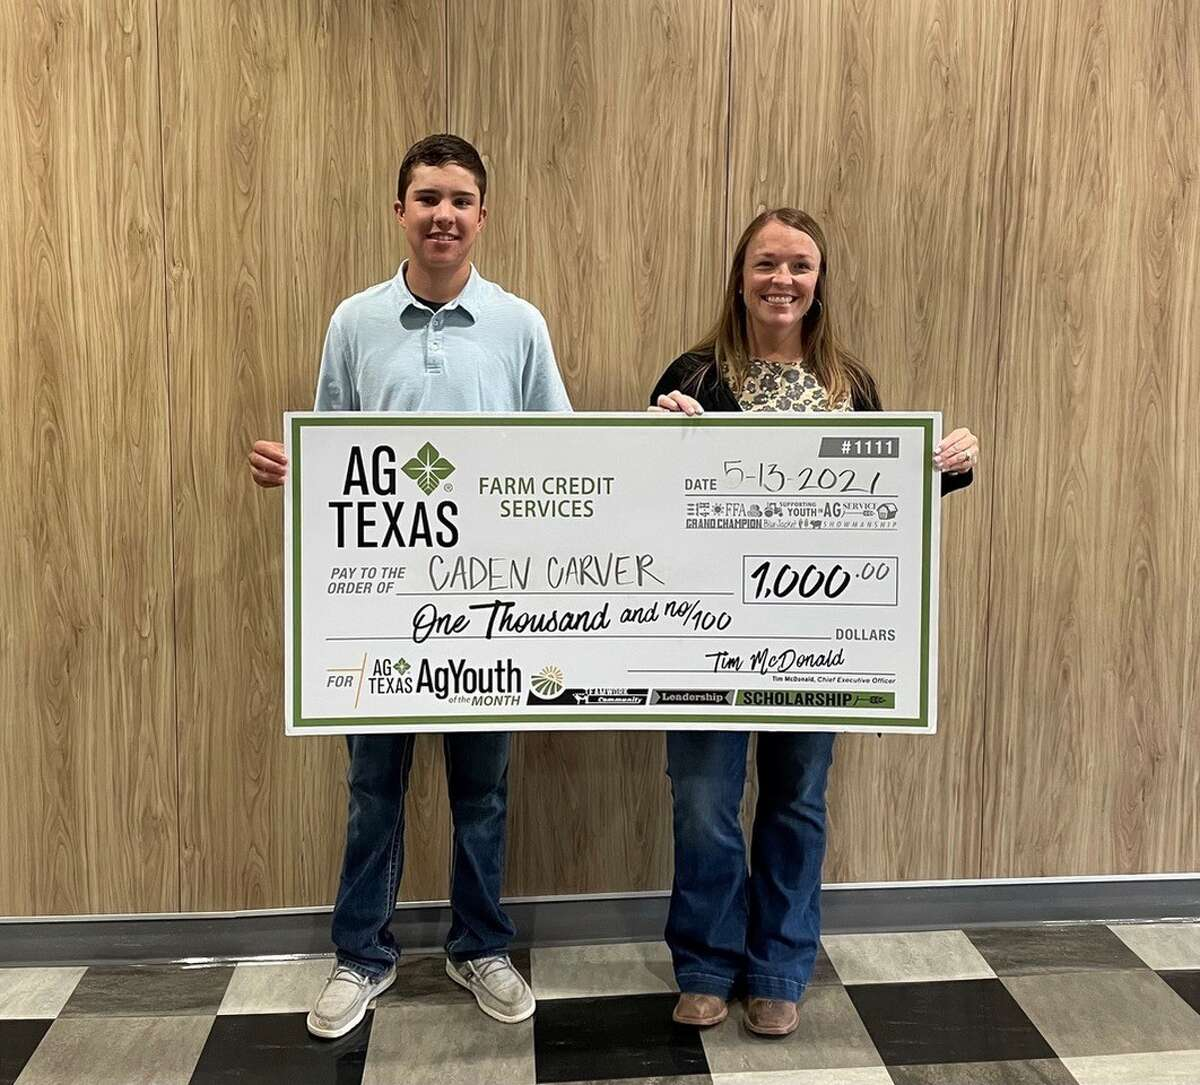 Here are the AgTexas AgYouth scholarship recipients for 2021. These students were recipients of $1,000 scholarships. Pictured: Caden Carver (Abernathy 4-H) and Kristy Tucker (AgTexas Farm Credit Services)